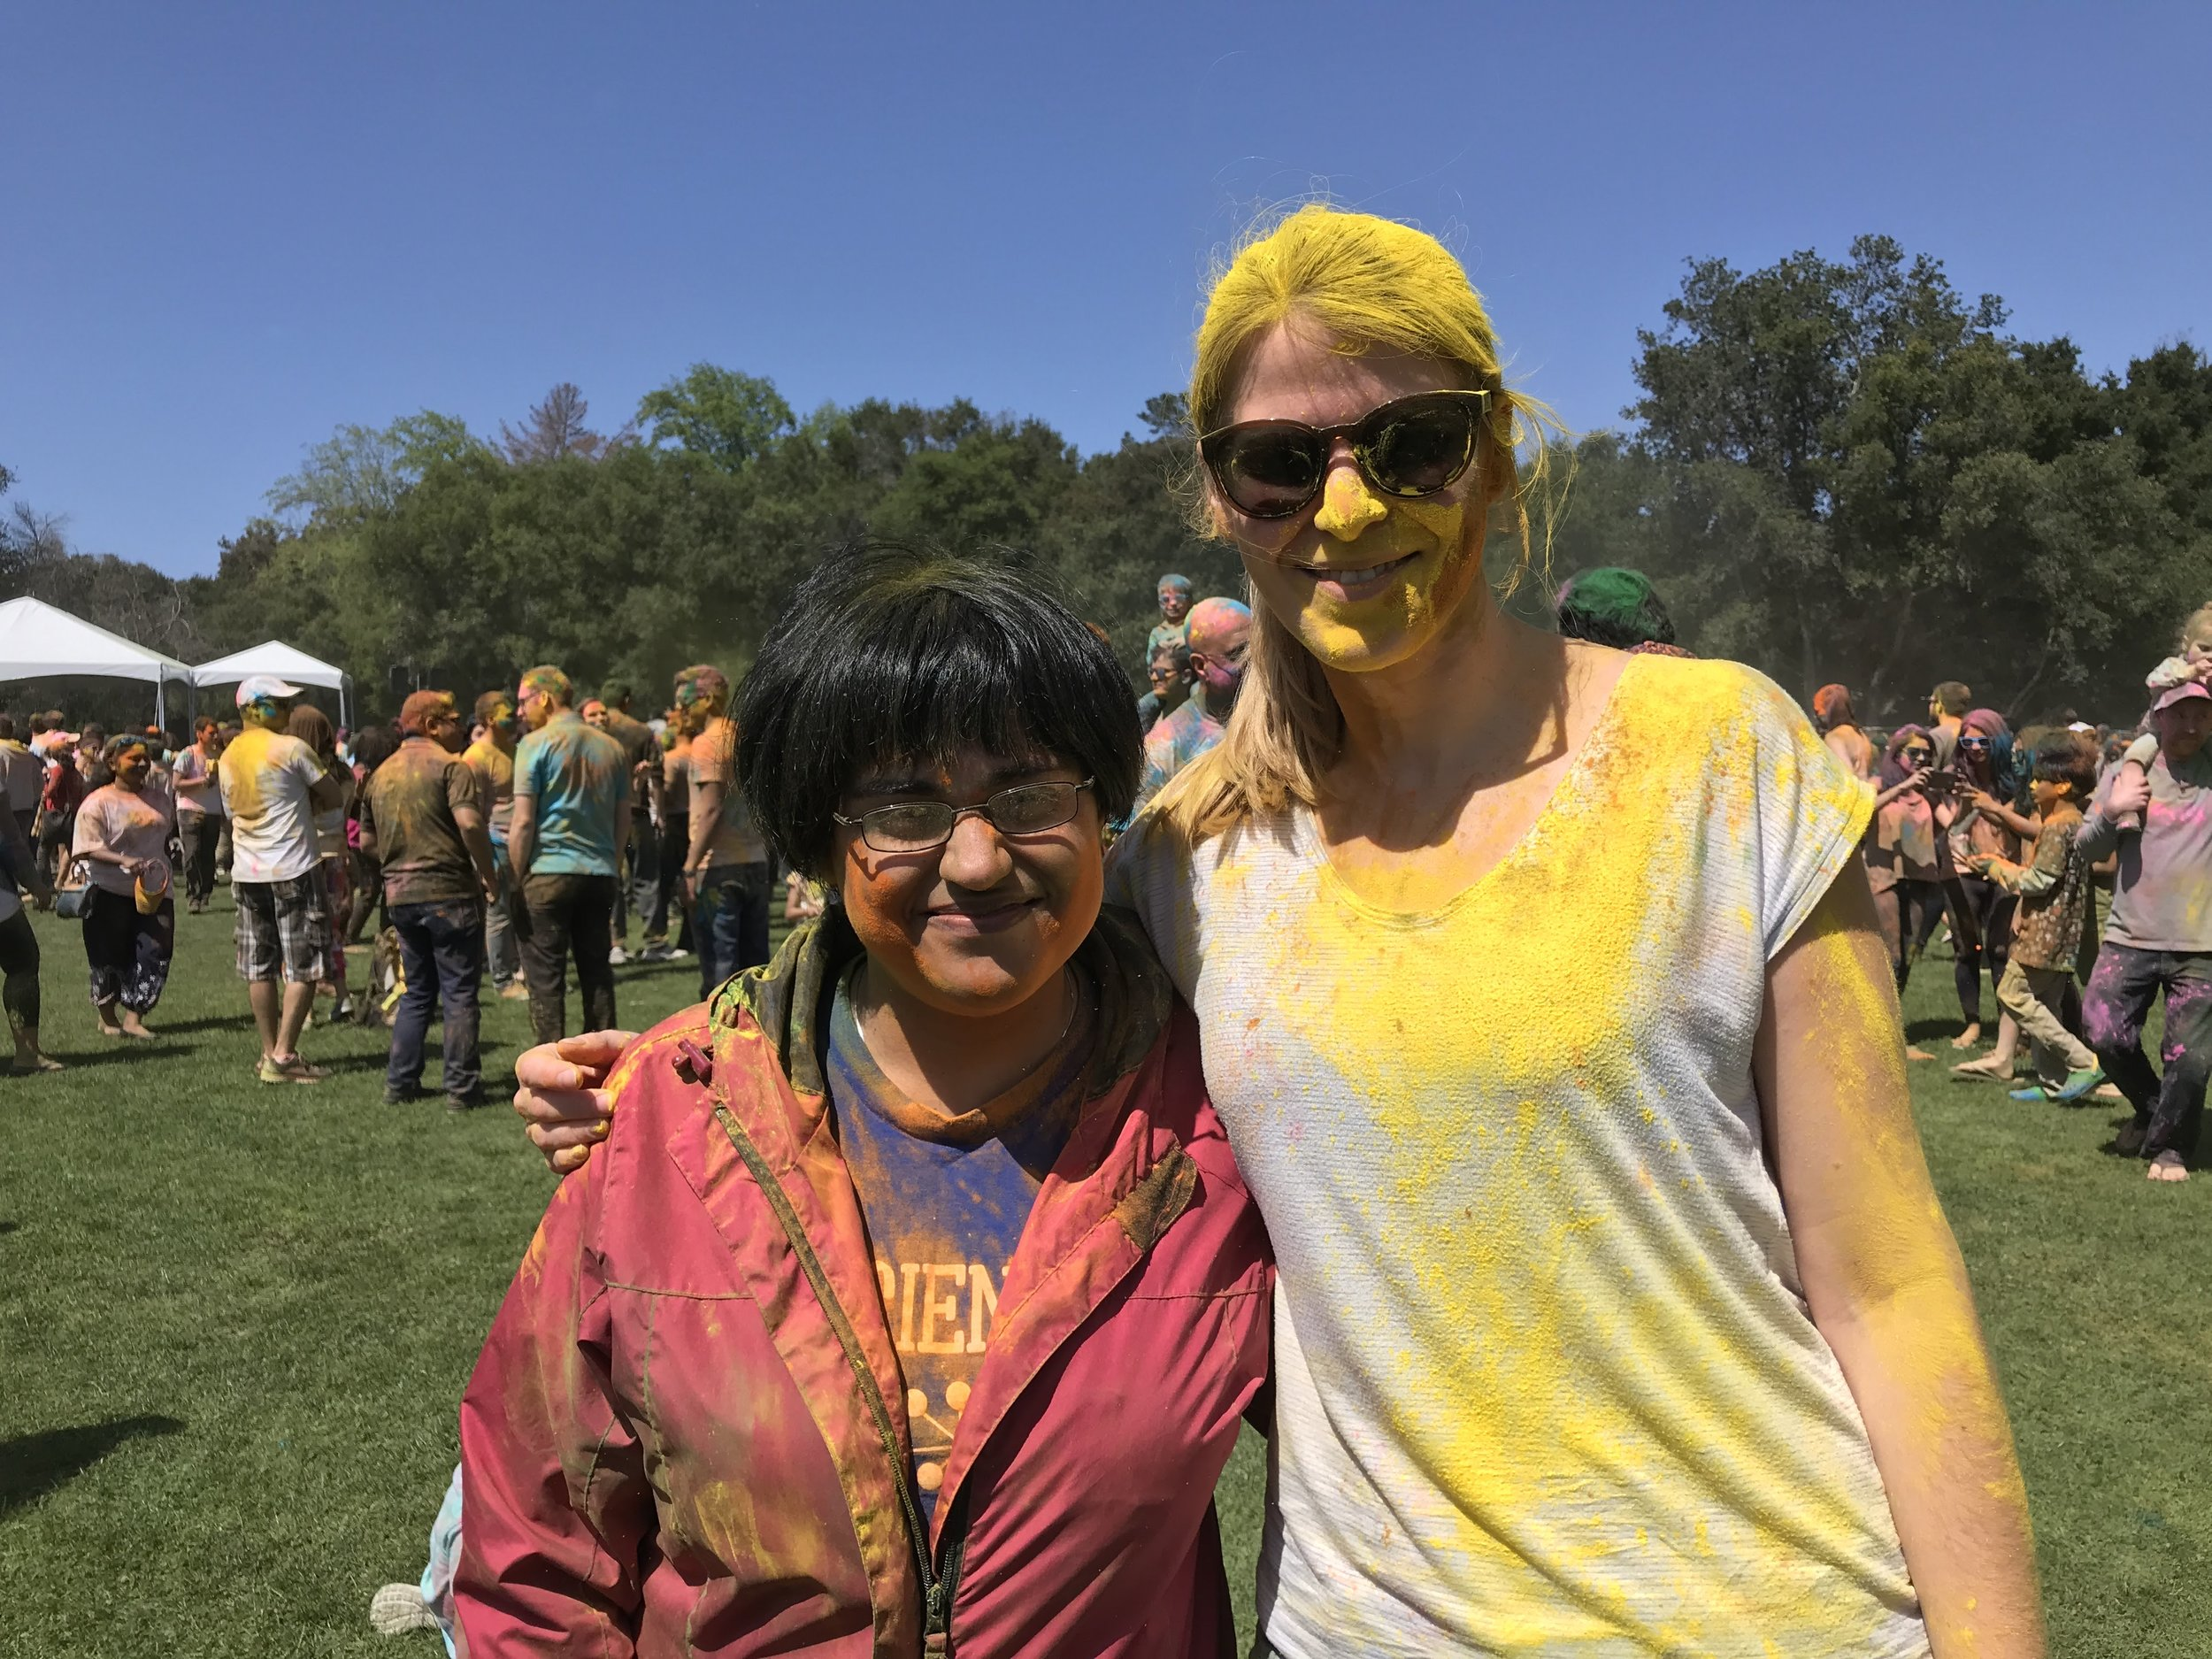 Celebrating Holi at Stanford!